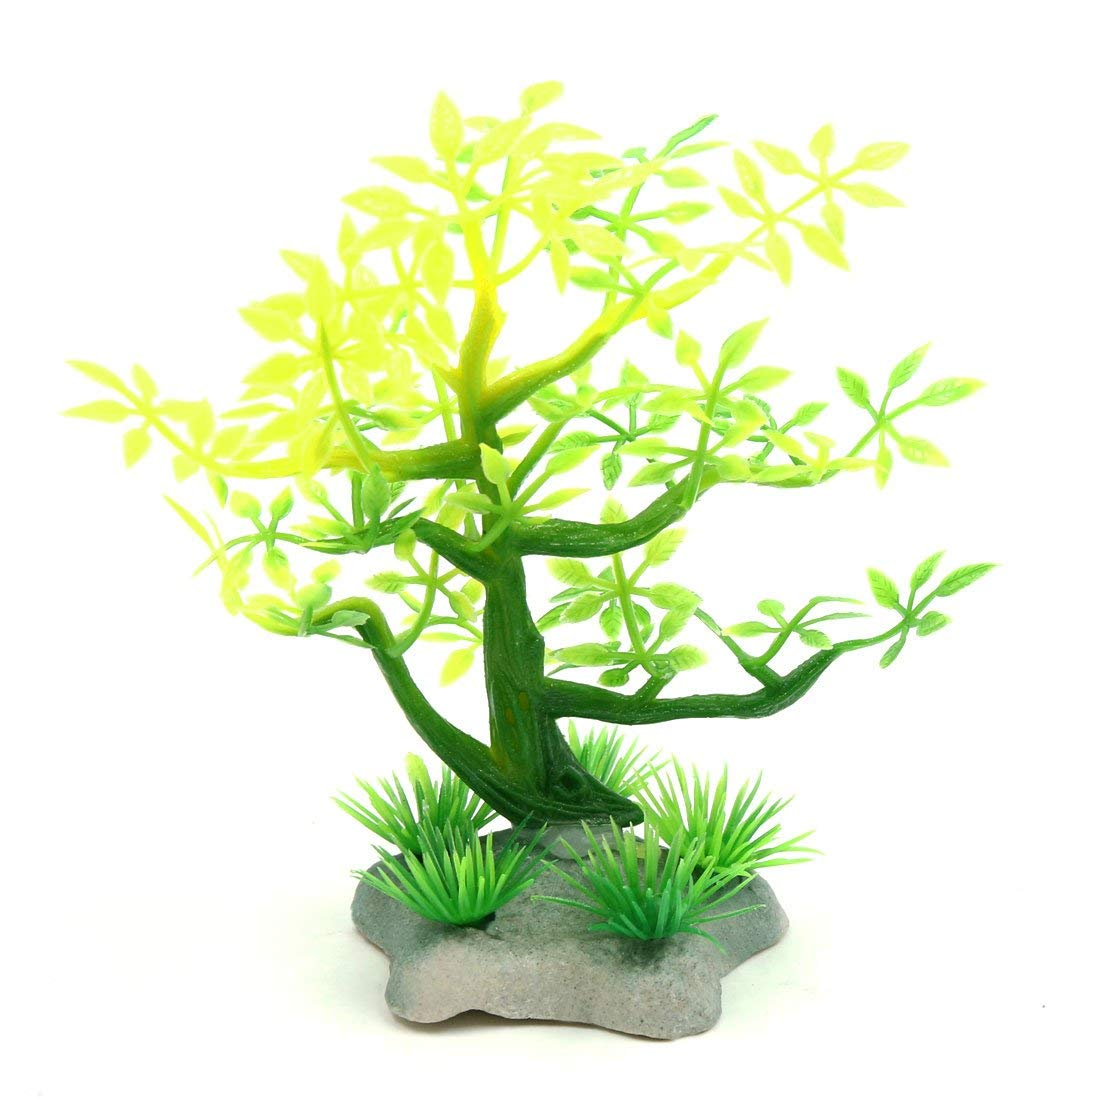 Amazon.com : ZCHXD Plastic Mini Lifelike Tree Aquarium Betta Tank Fishbowl Landscape Decor w/Stand : Pet Supplies